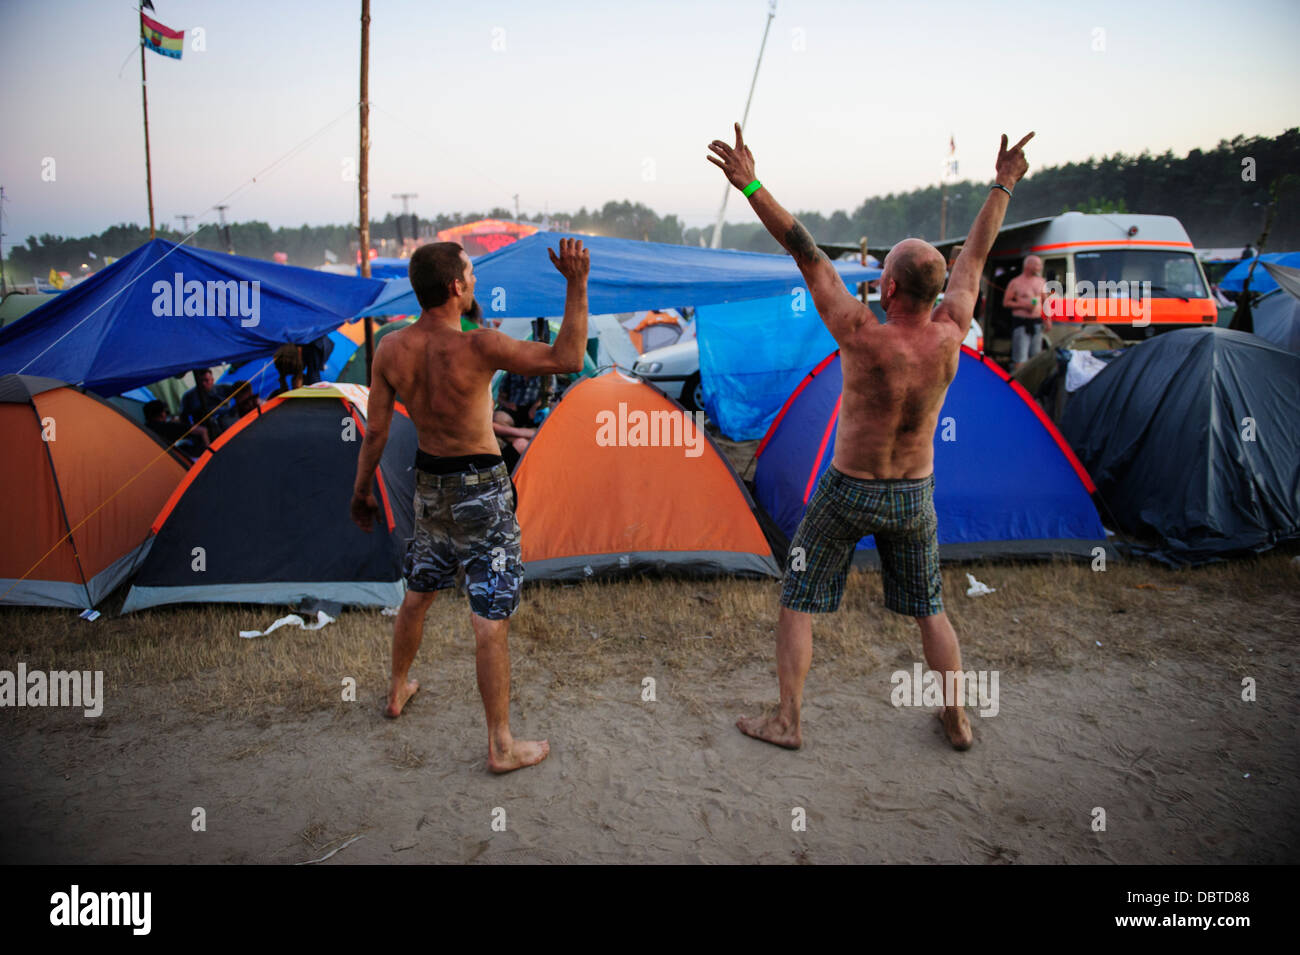 Two men having fun and cheering at the main campsite during the Przystanek Woodstock Music festival in Kostrzyn, - Stock Image